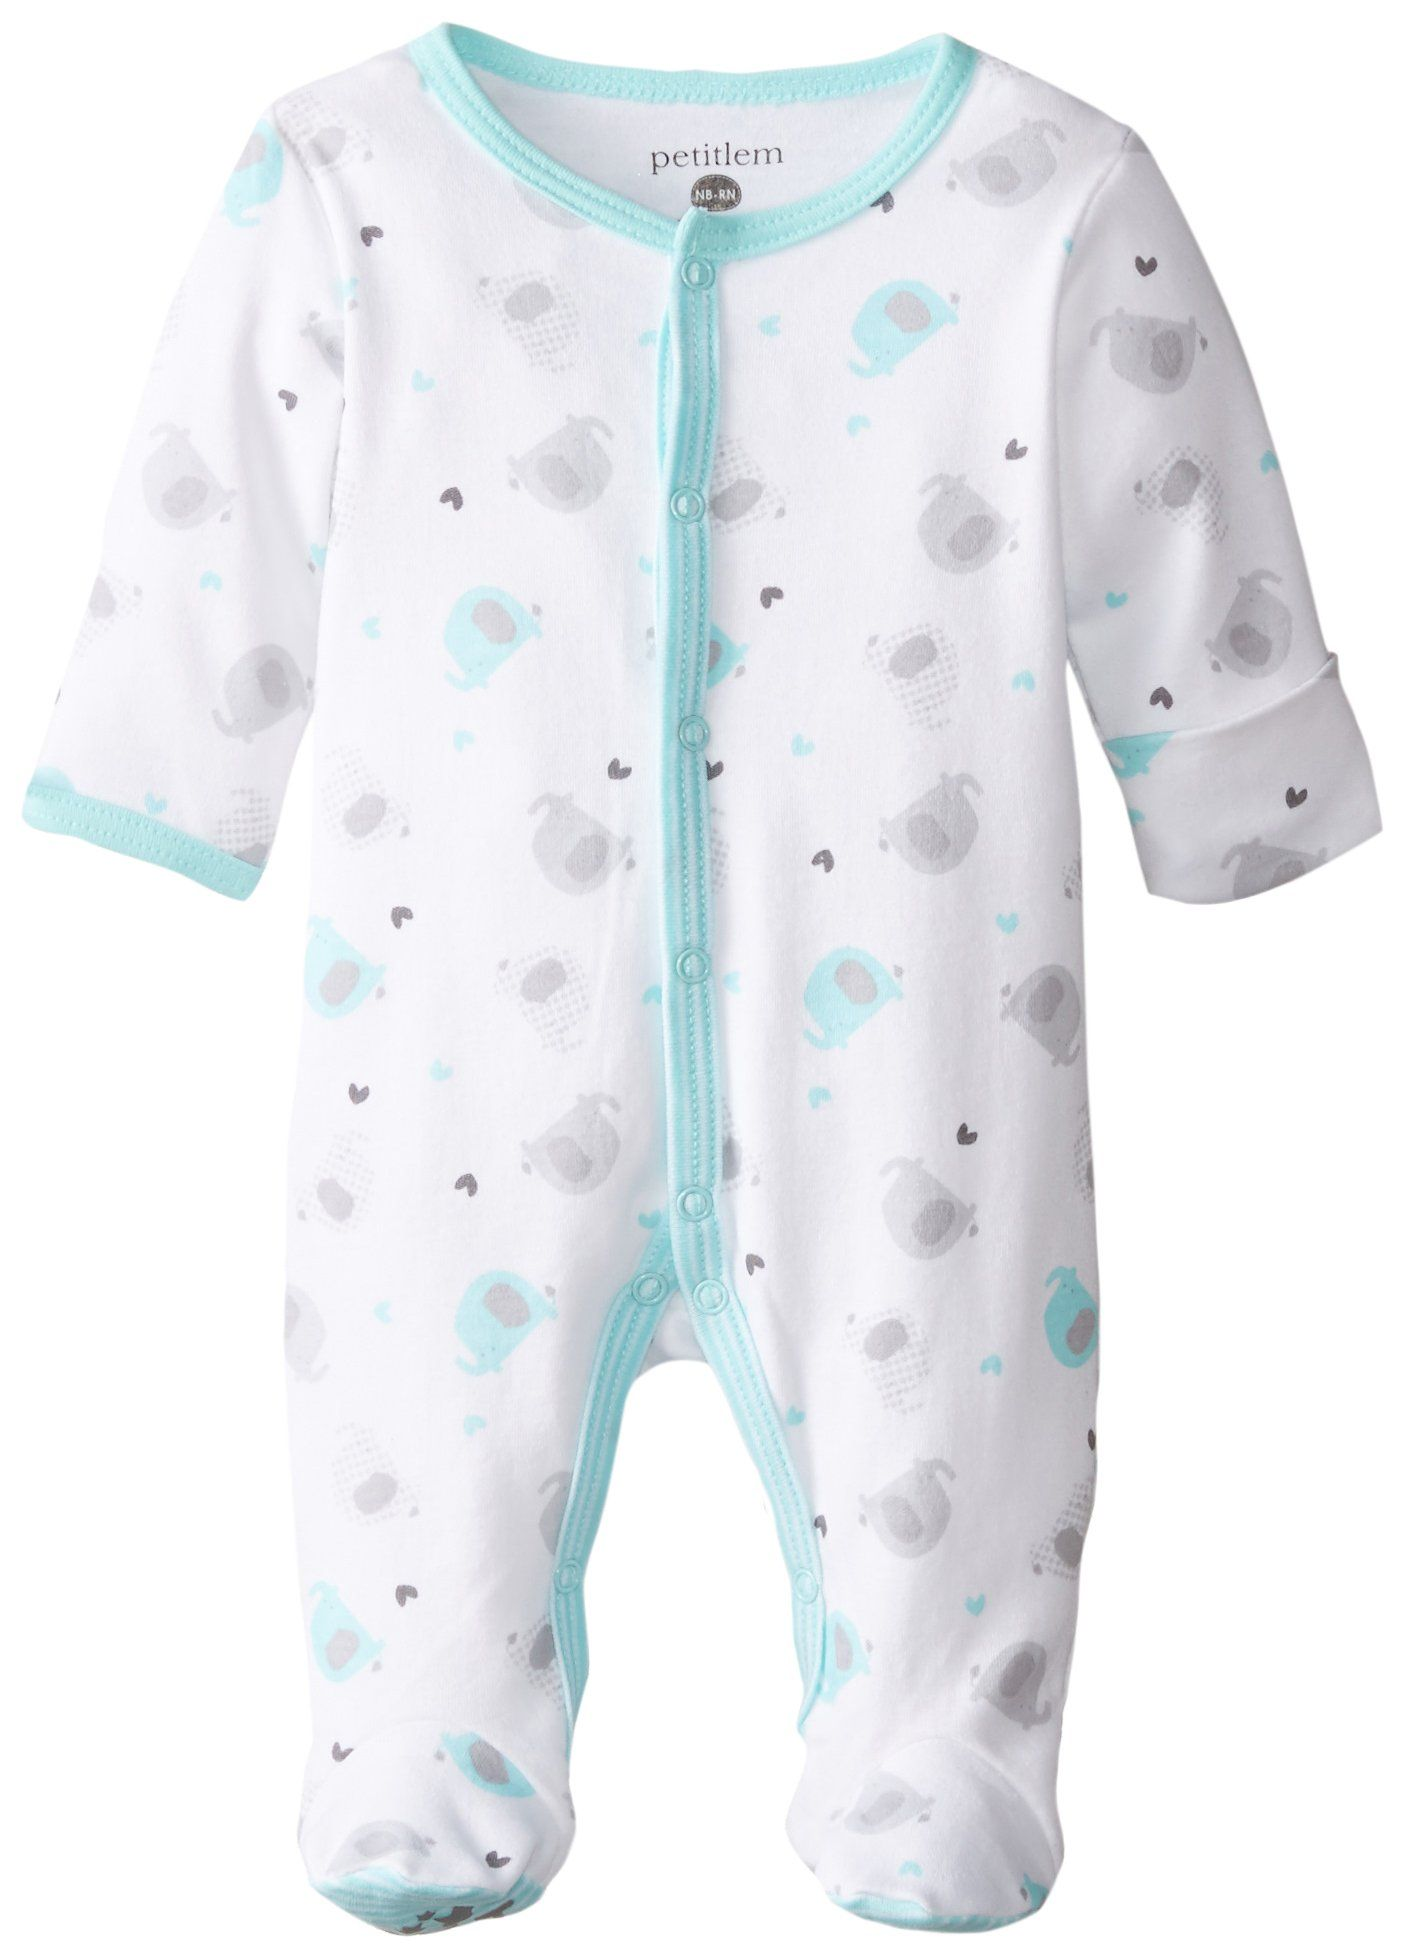 Baby Footed Sleeper Premium Soft and Breathable Cotton Multiple